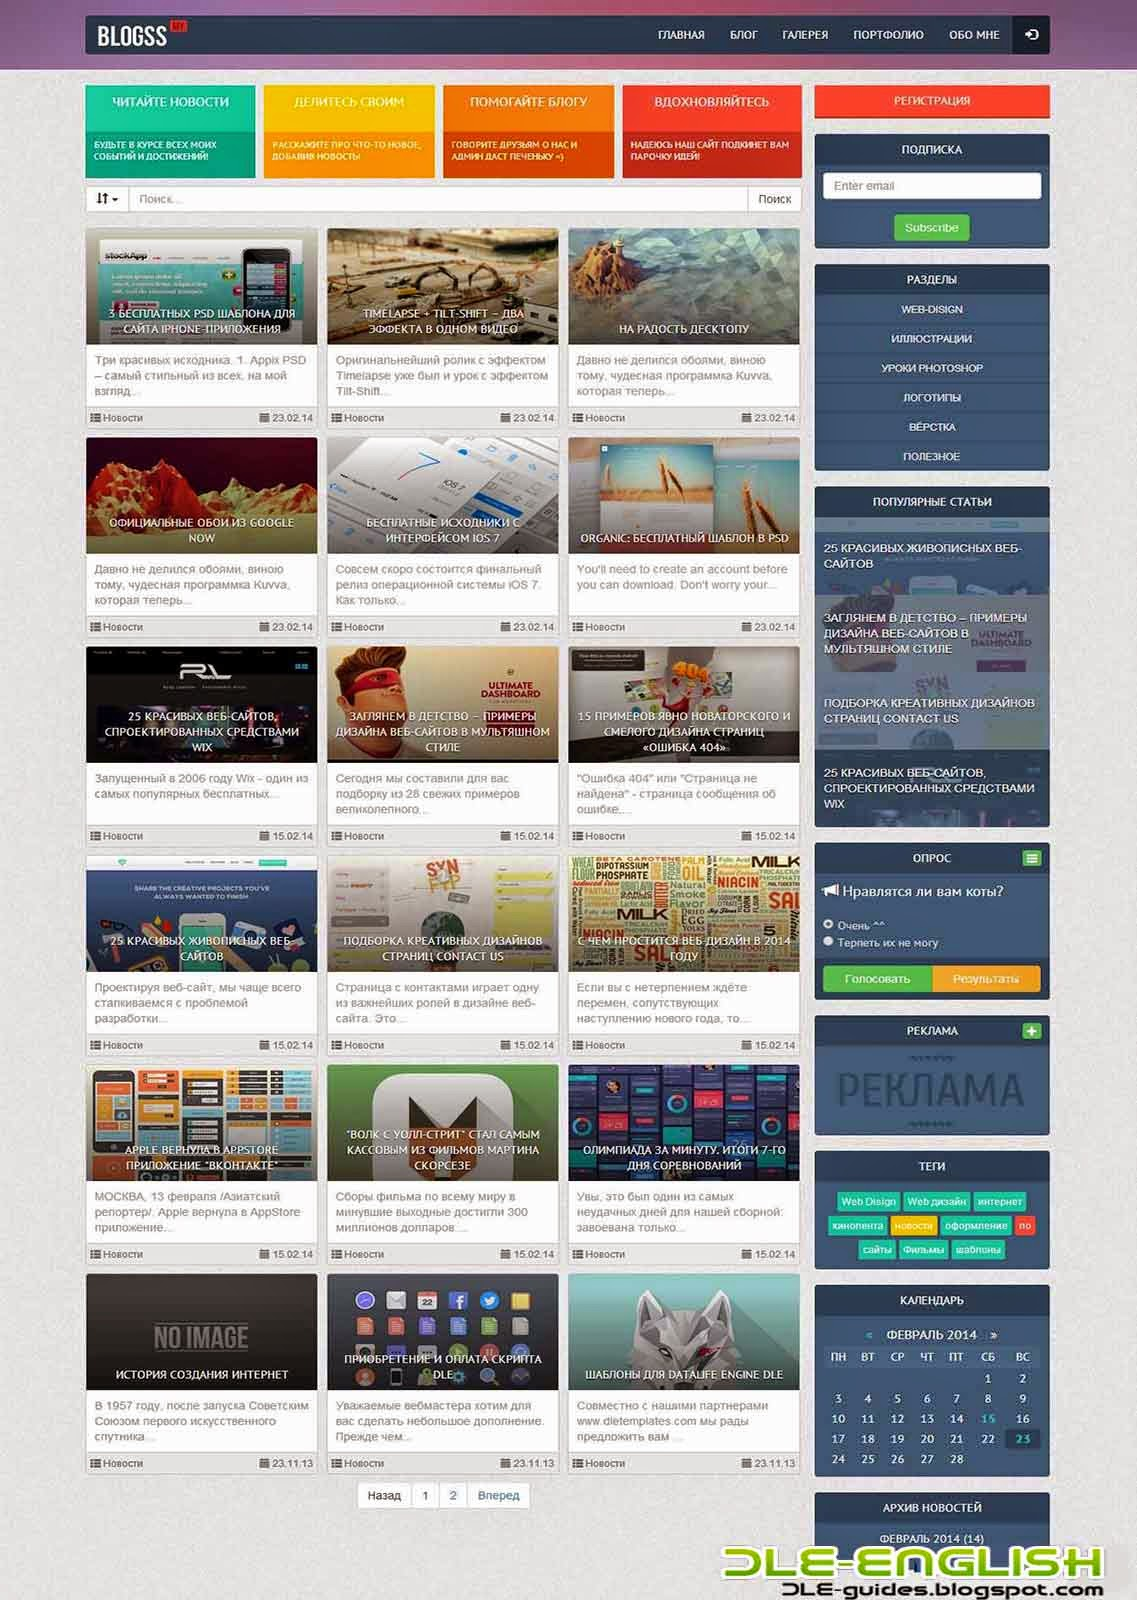 Template Blogss DLE 11.1 English